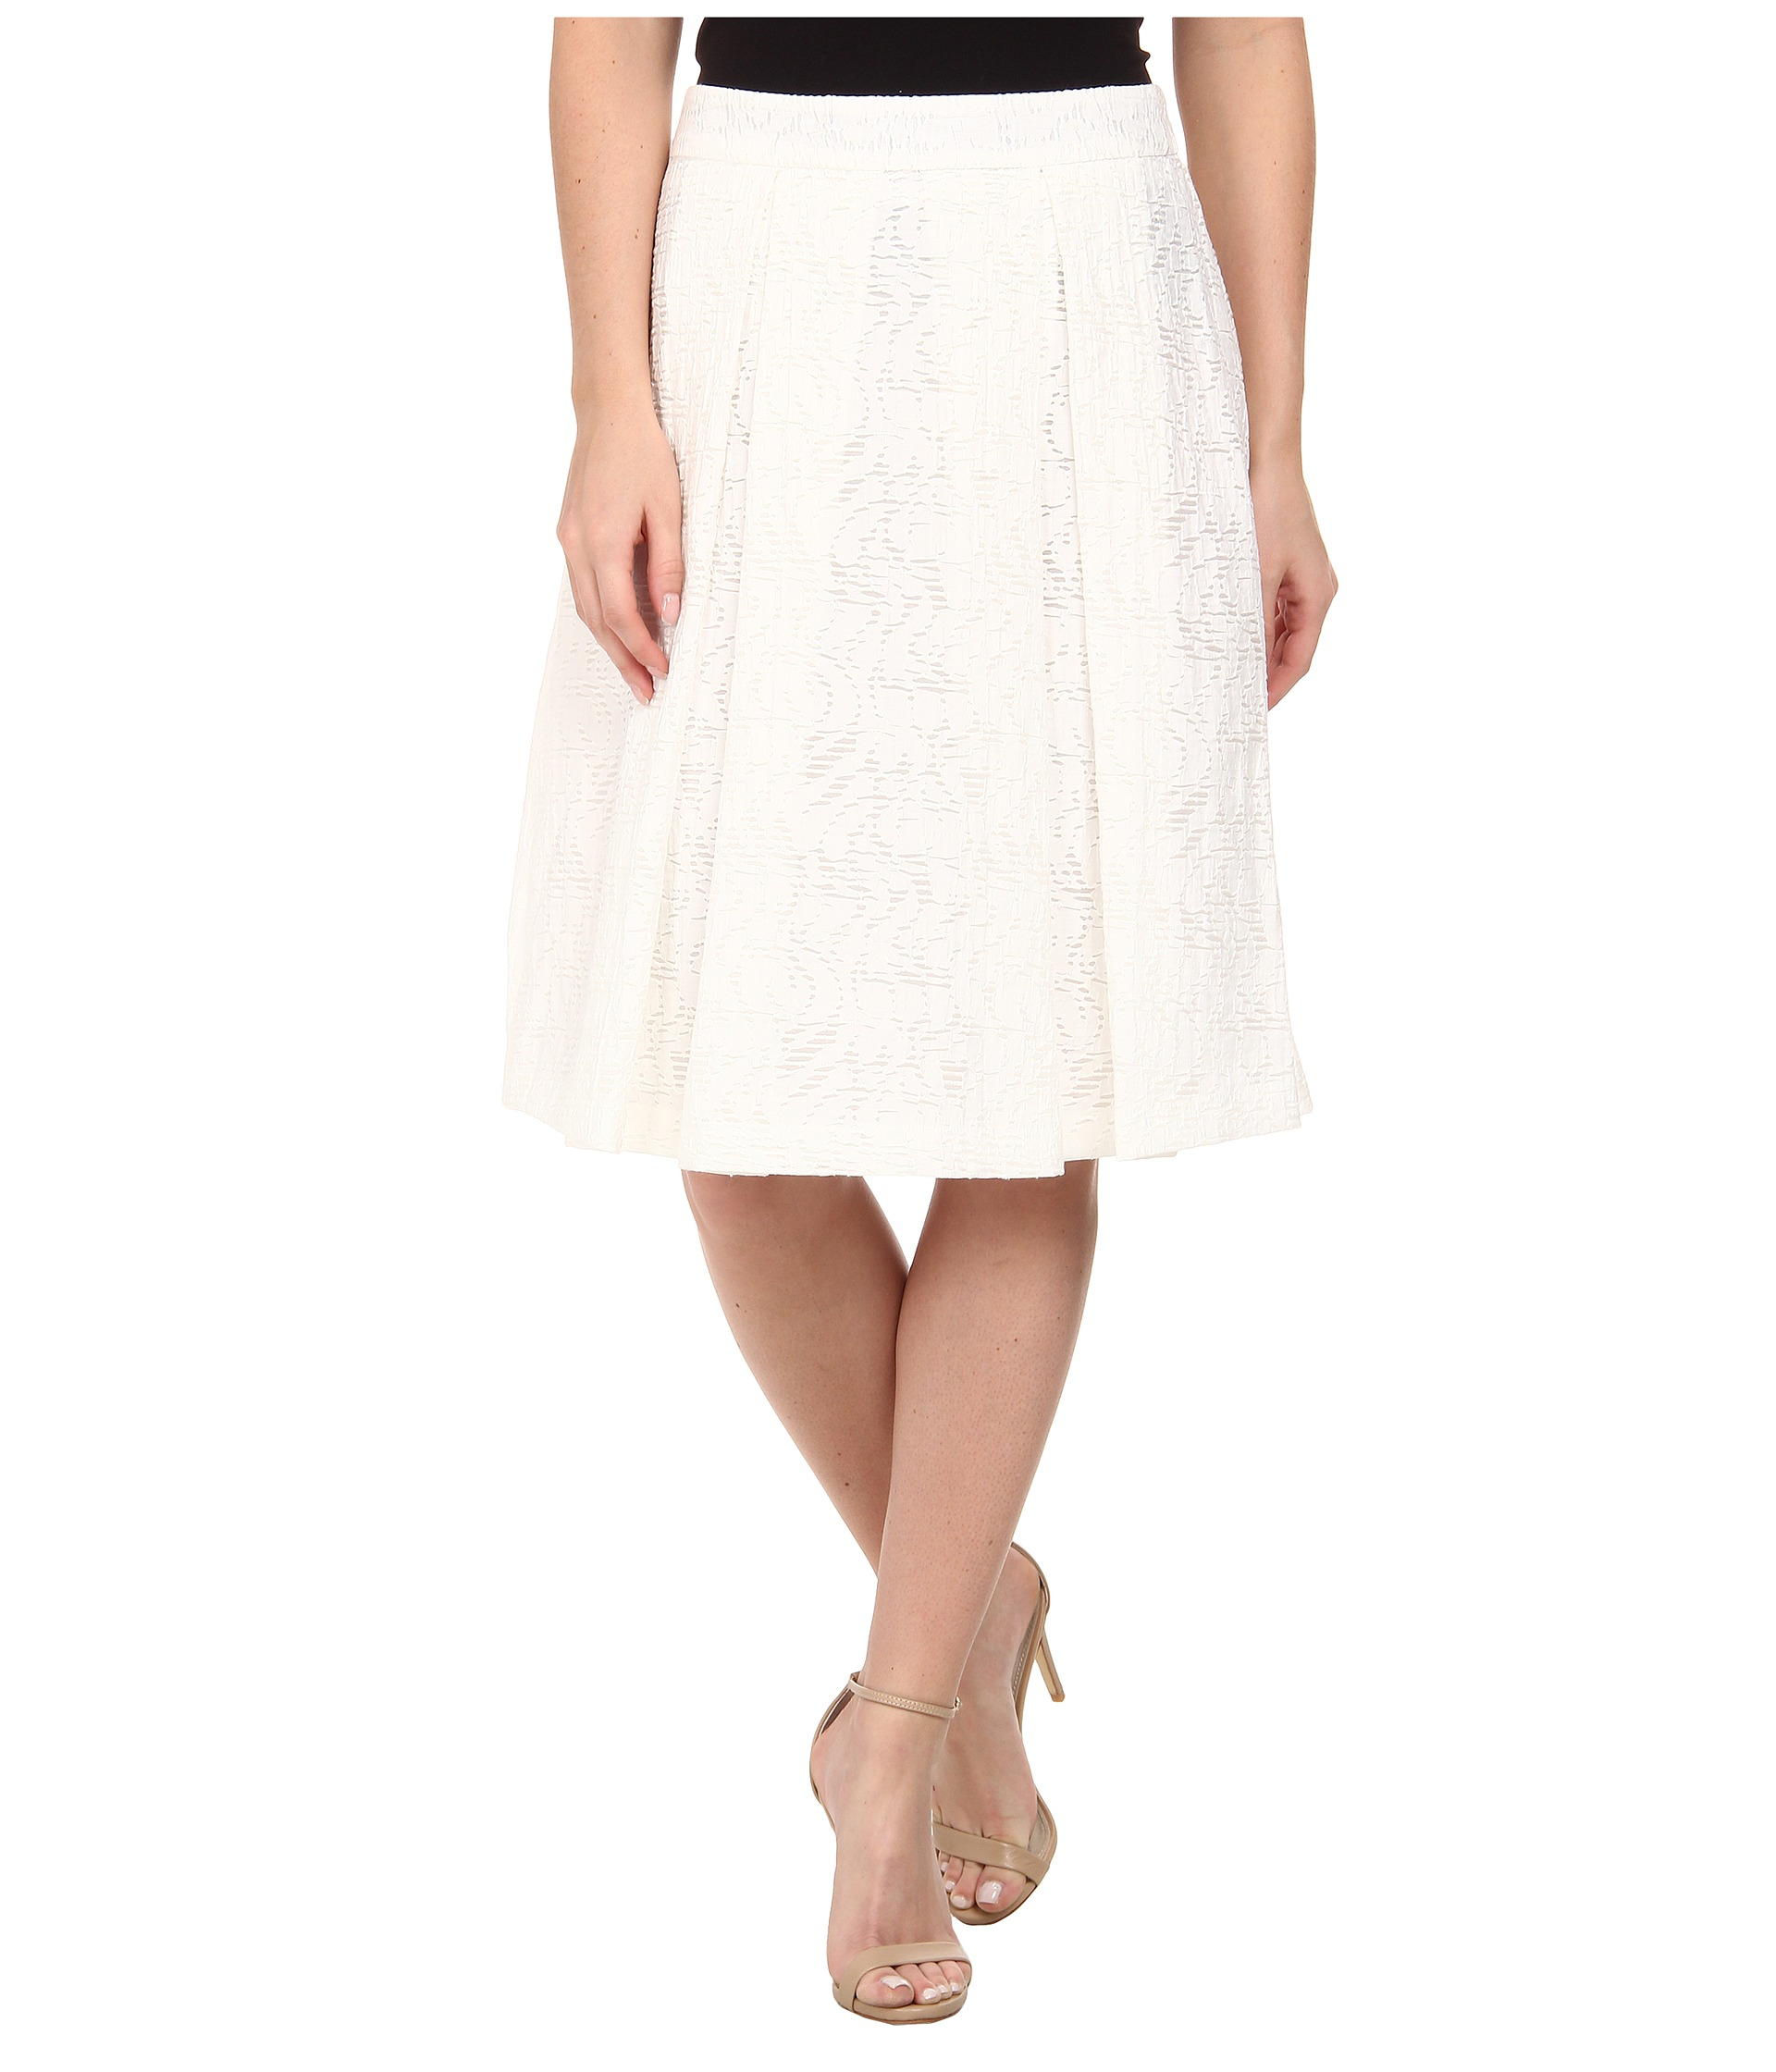 Vince camuto Knee-Length A-Line Skirt W/ Front Pleats in White | Lyst